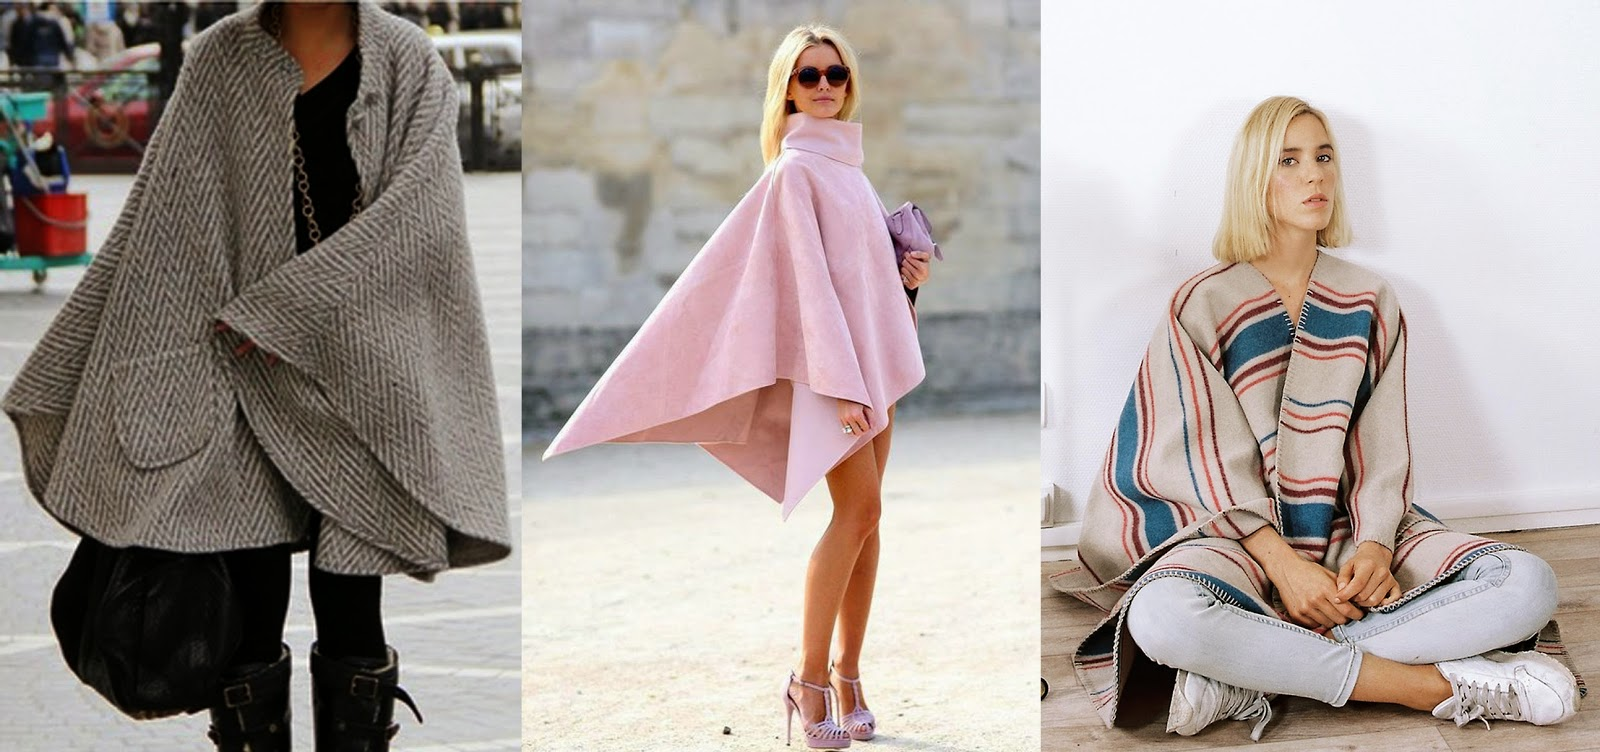 Trend Alert - Capes on laurarebeccasmith.com